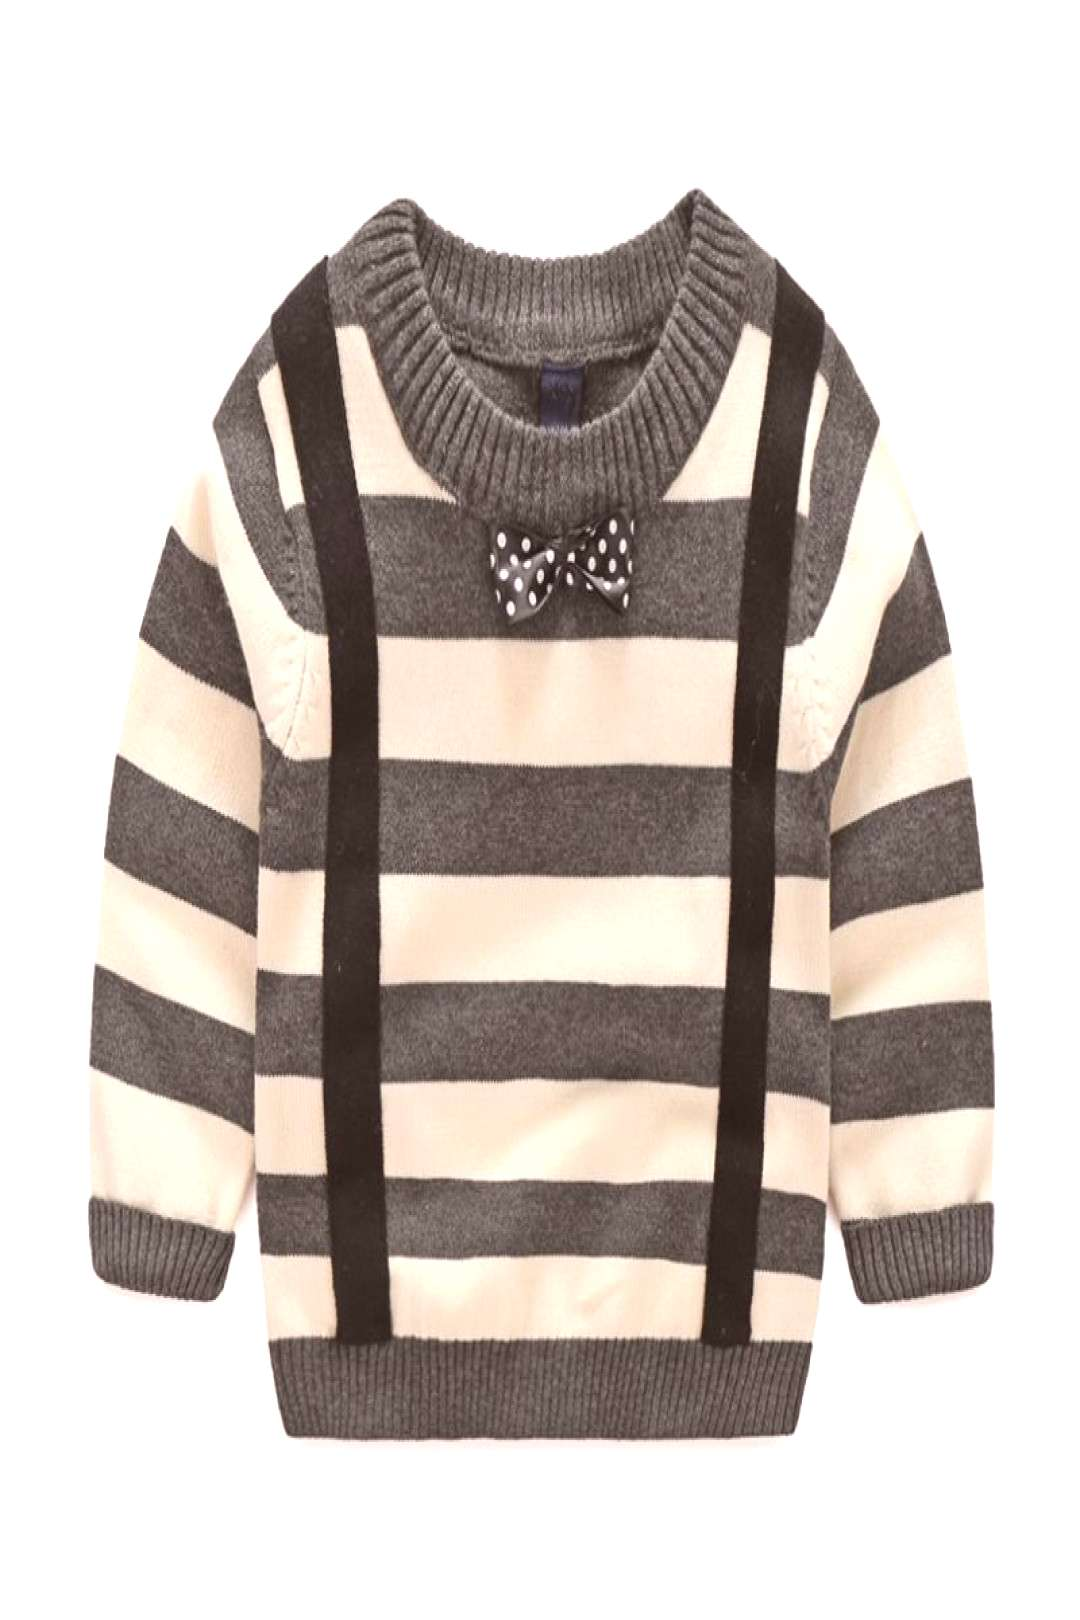 free shipping 2017 autumn winter boys cotton stripe coat pullovers baby boys childrens sweater bab